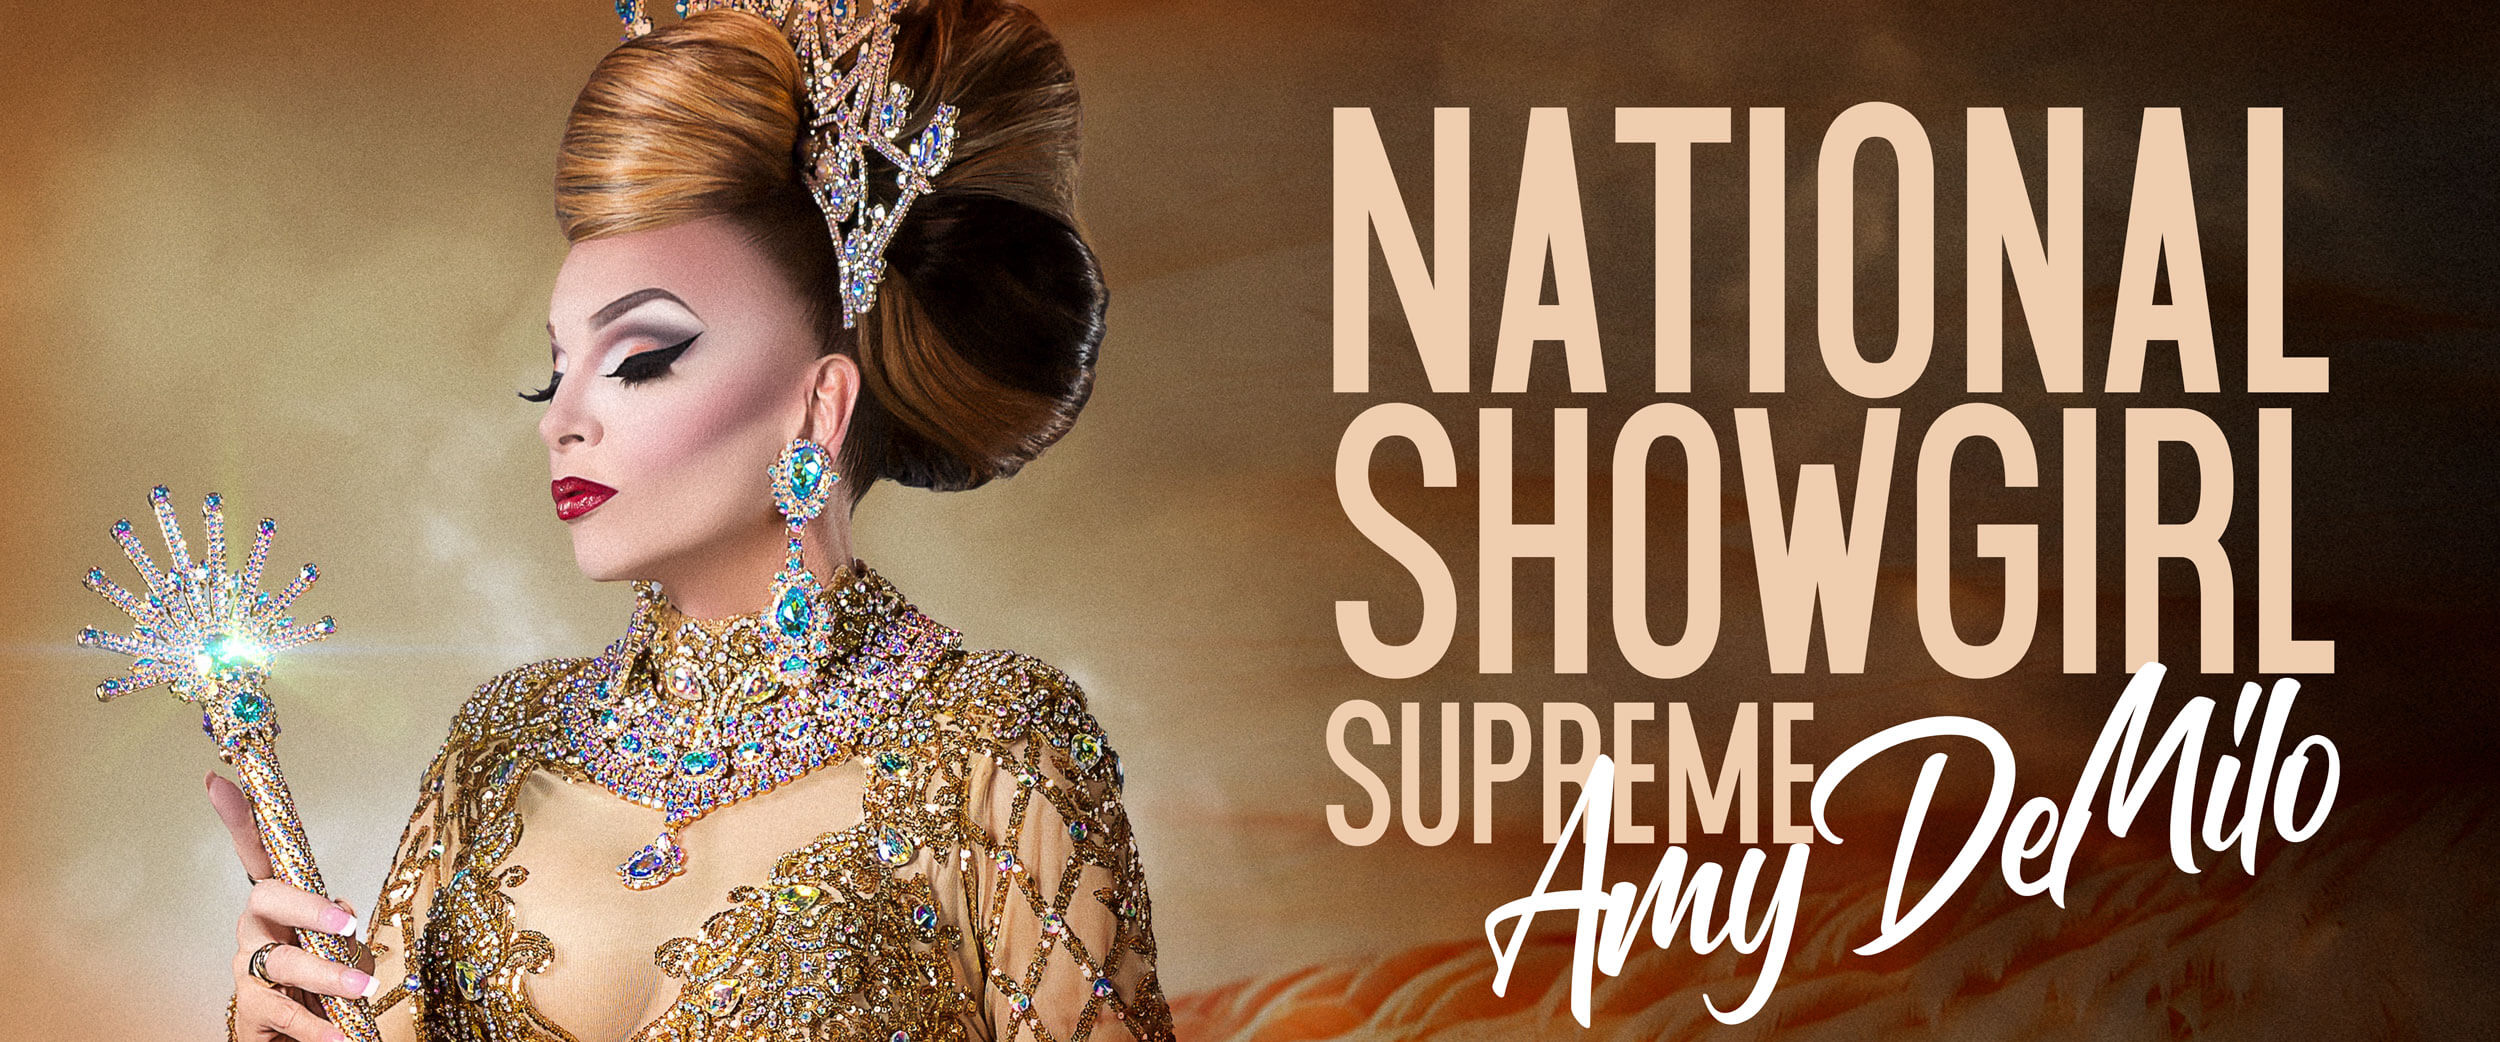 Amy-DeMilo---National-Showgirl-Supreme-banner-1